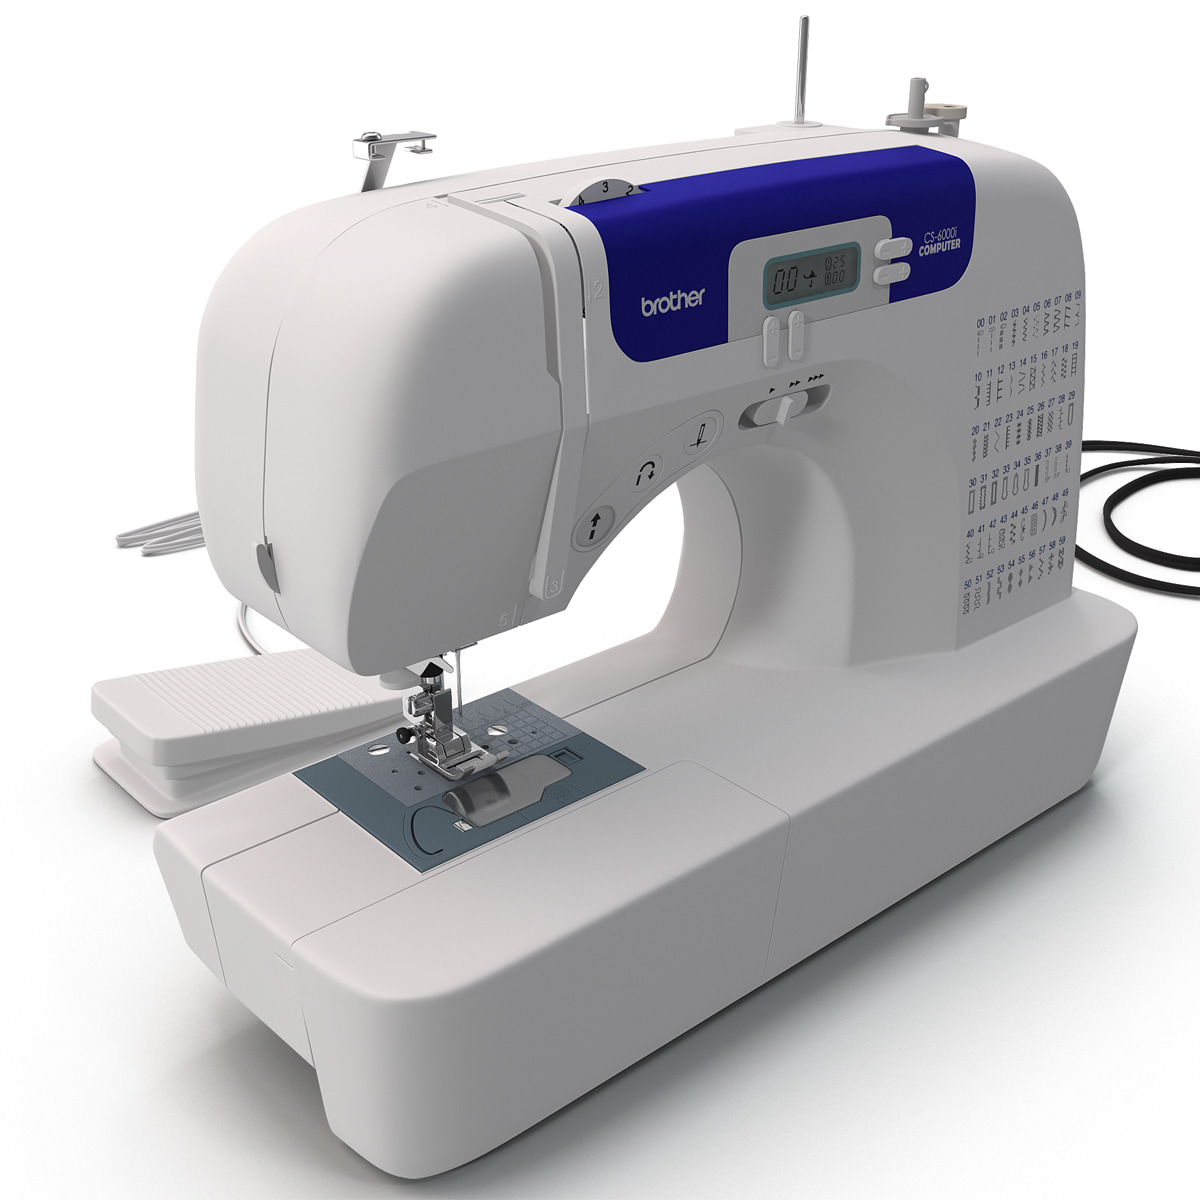 cs6000i sewing machine reviews